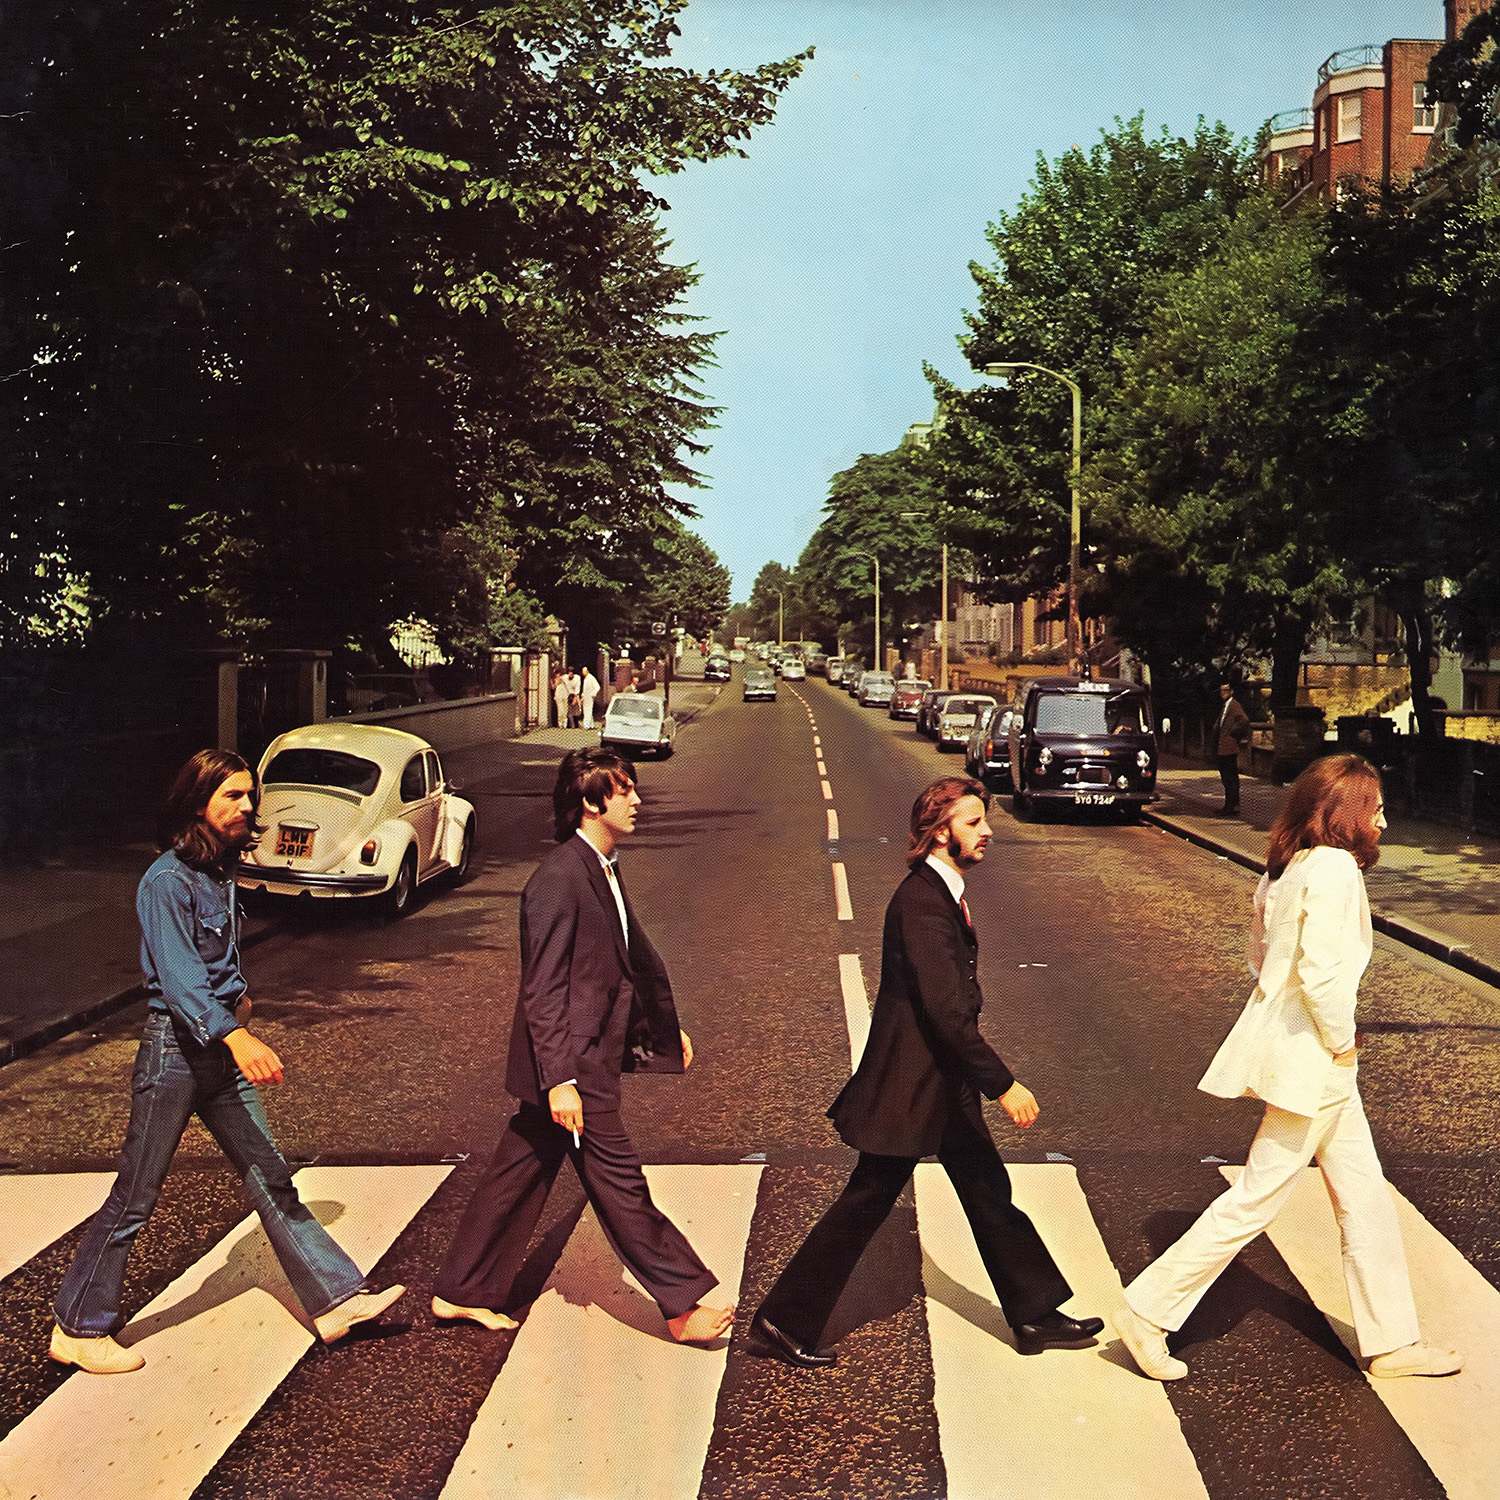 Print of Abbey Road album cover